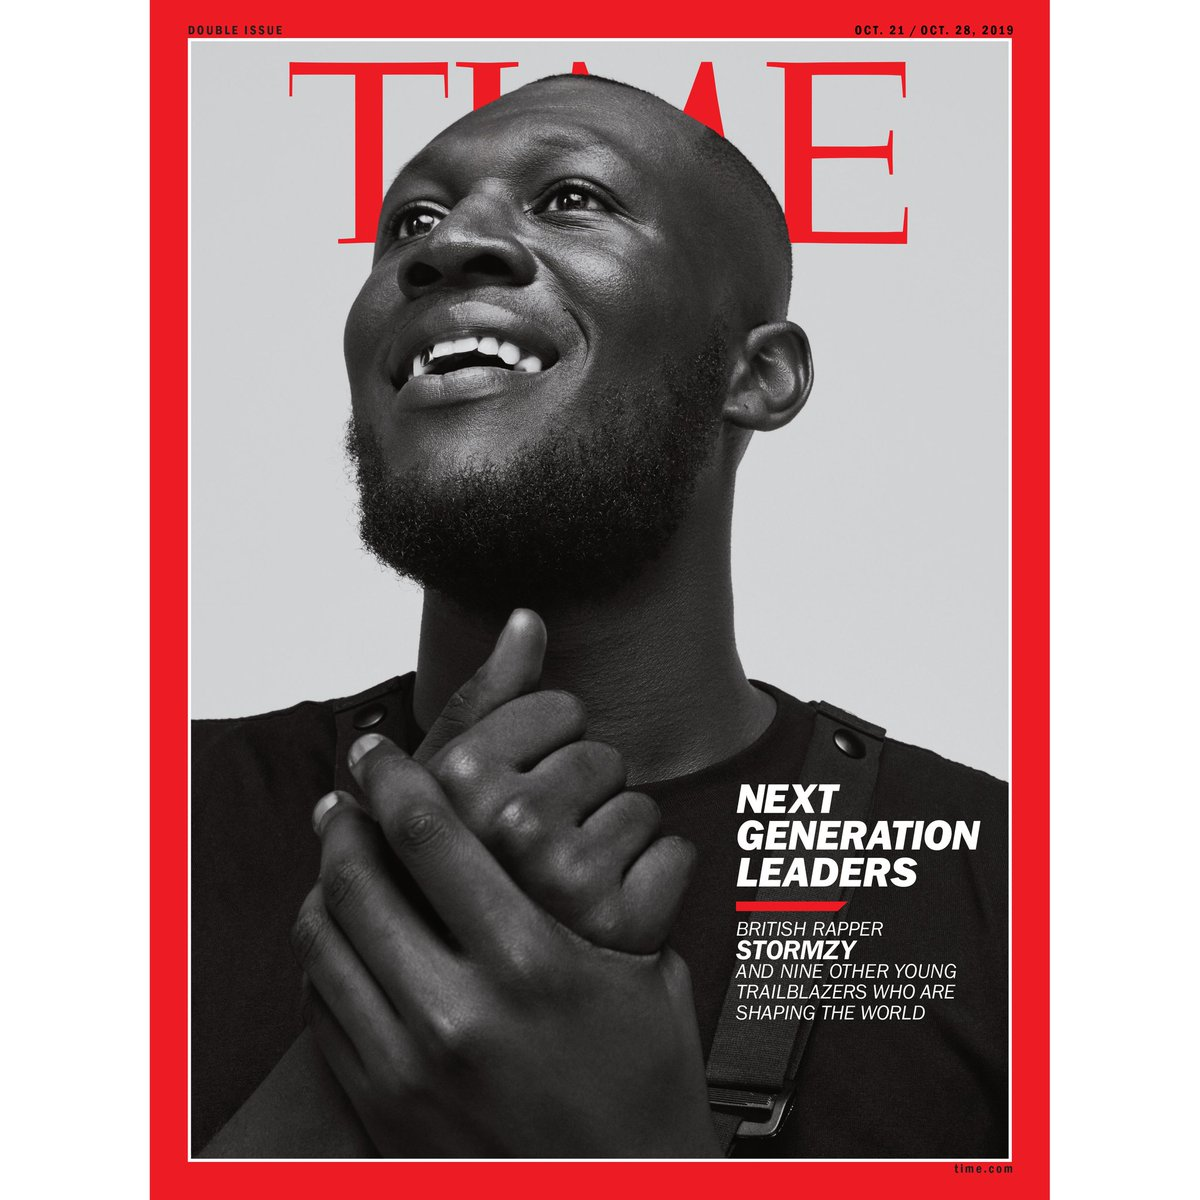 It was an honour to profile @stormzy for the cover of @TIME. We had such an interesting chat about his music, advocacy, and his deliberate intentions to share the limelight with Black British talent. An iconic cover image, too! time.com/collection-pos…